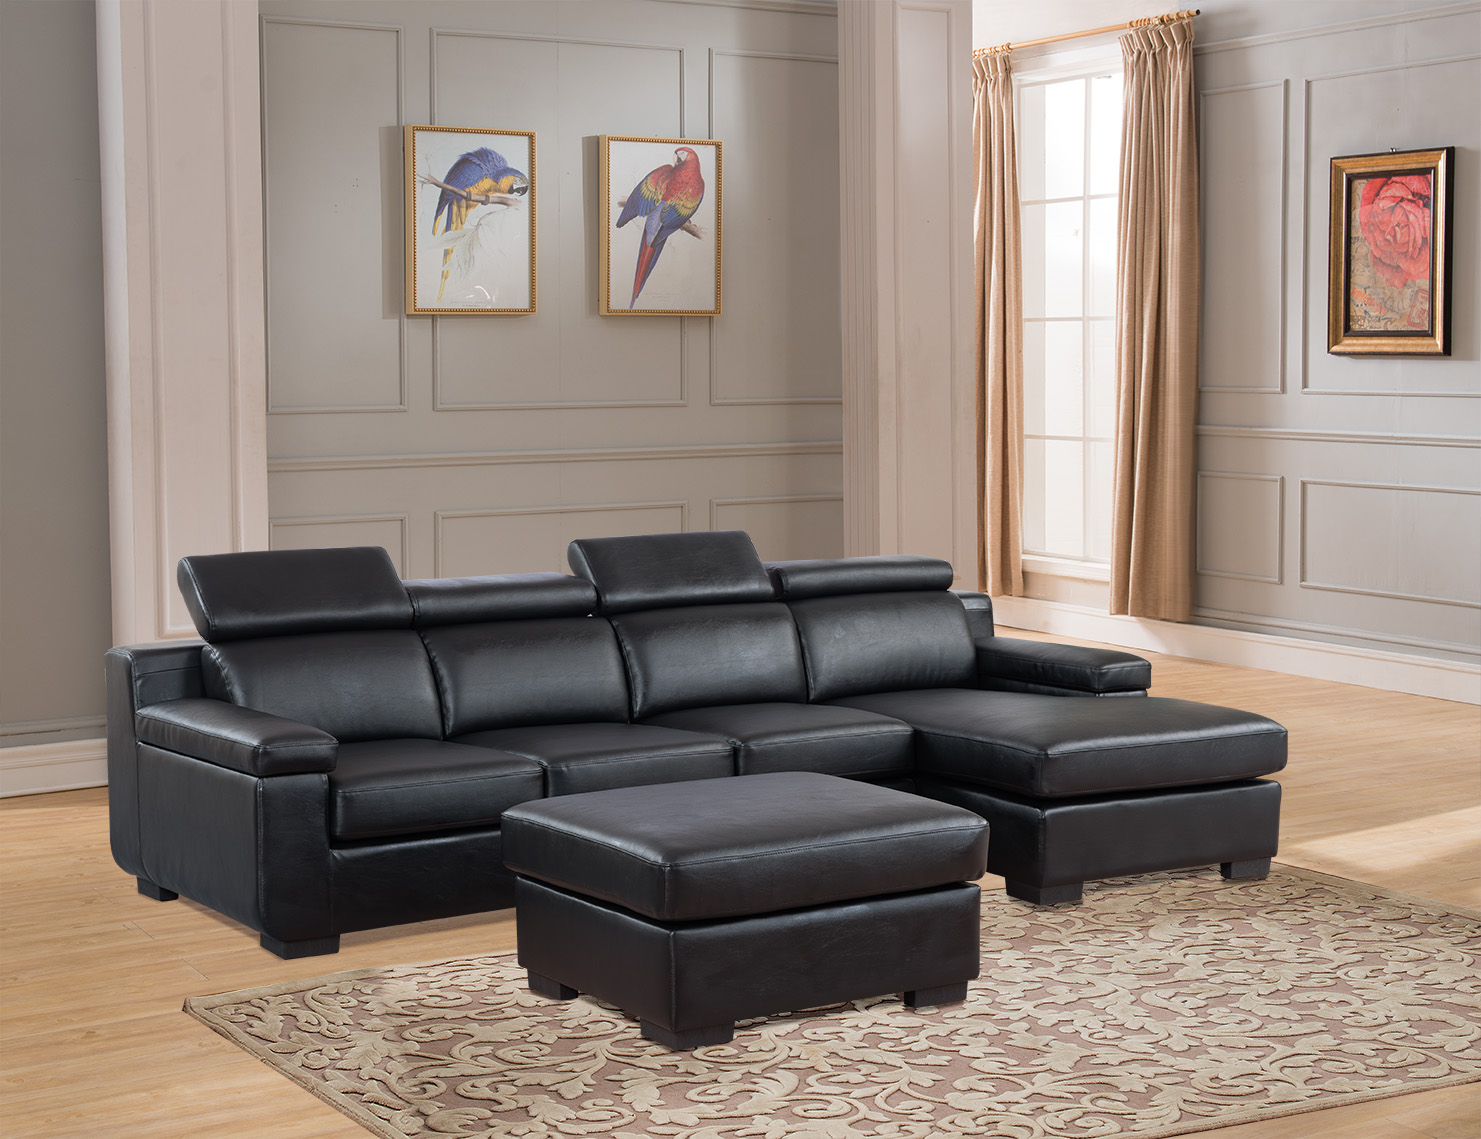 Sectional Sofa Black Color Chaise Two Seat Sofa Ottoman Footrest Unique Headrest Living Room Furniture Set  sc 1 st  Walmart : chaise with ottoman - Sectionals, Sofas & Couches